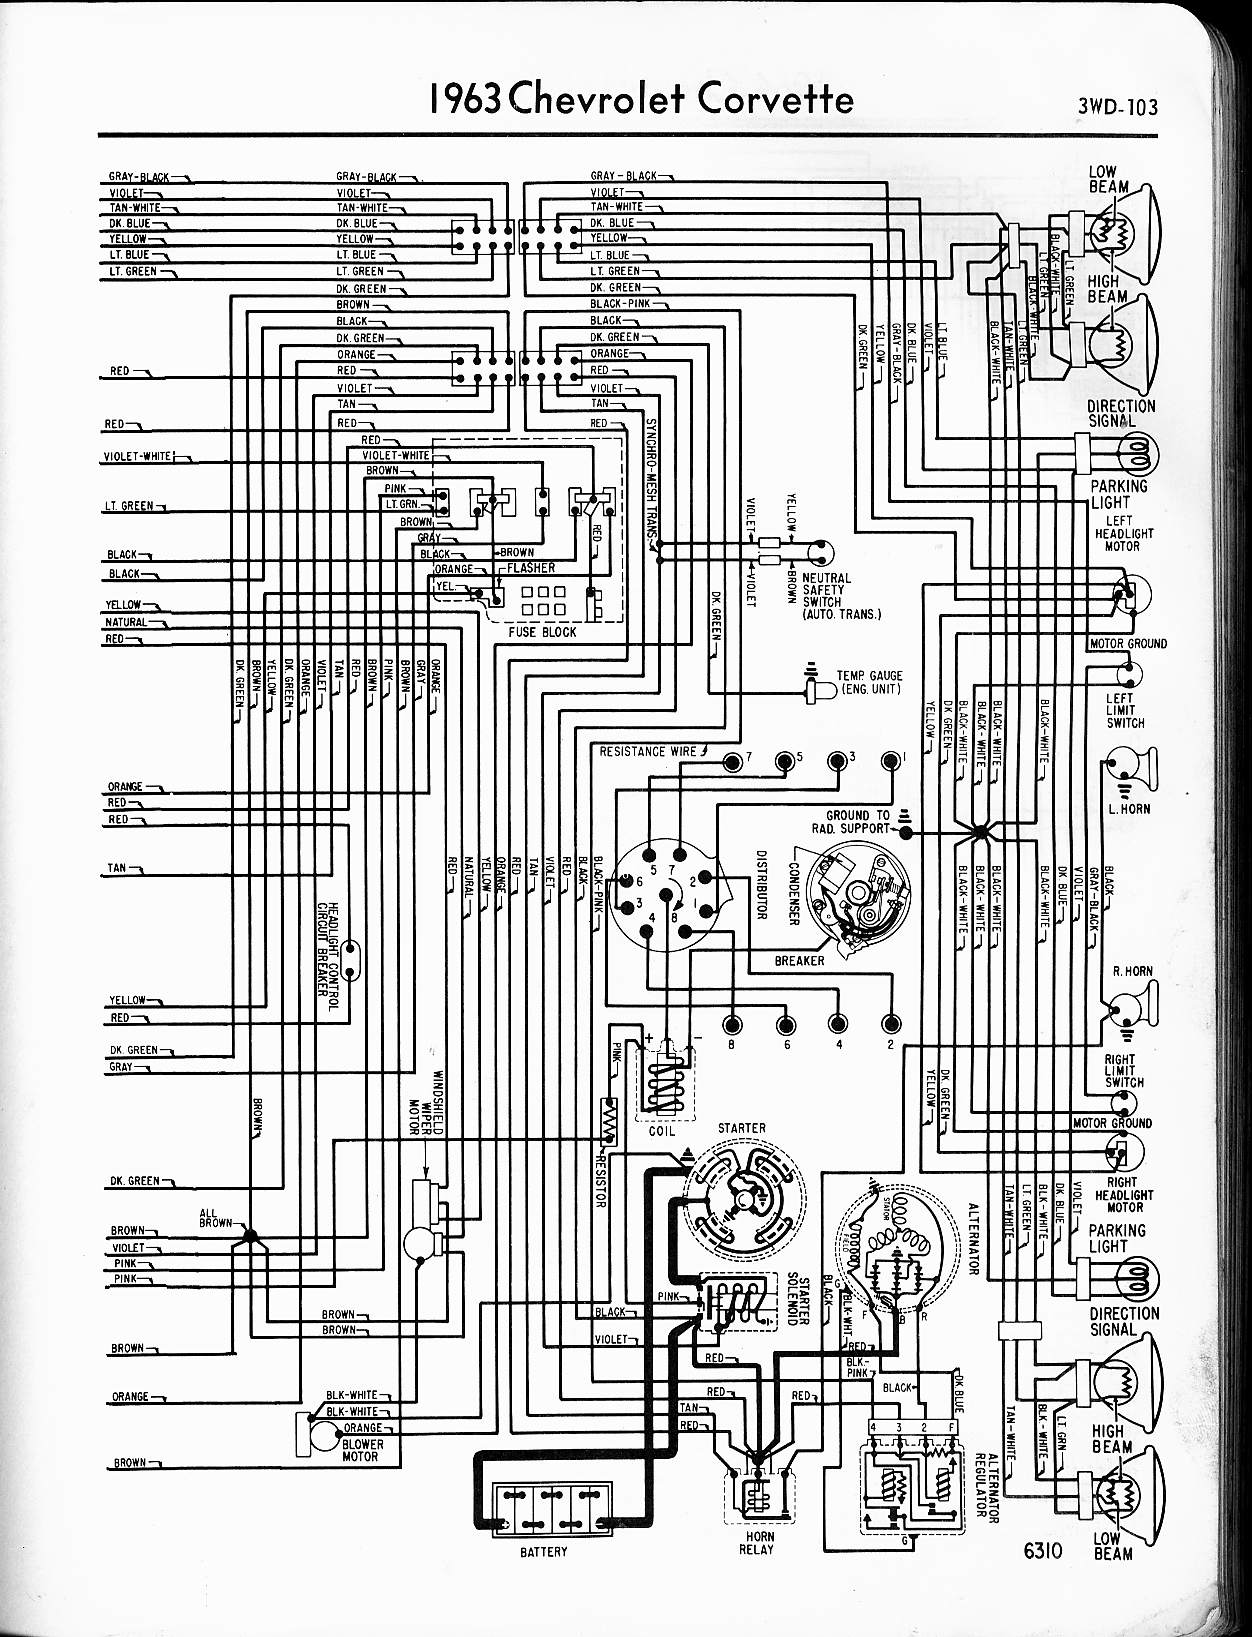 1979 Corvette Wiring Harness Diagram Library Door Latch Parts 57 65 Chevy Diagrams Rh Oldcarmanualproject Com 1965